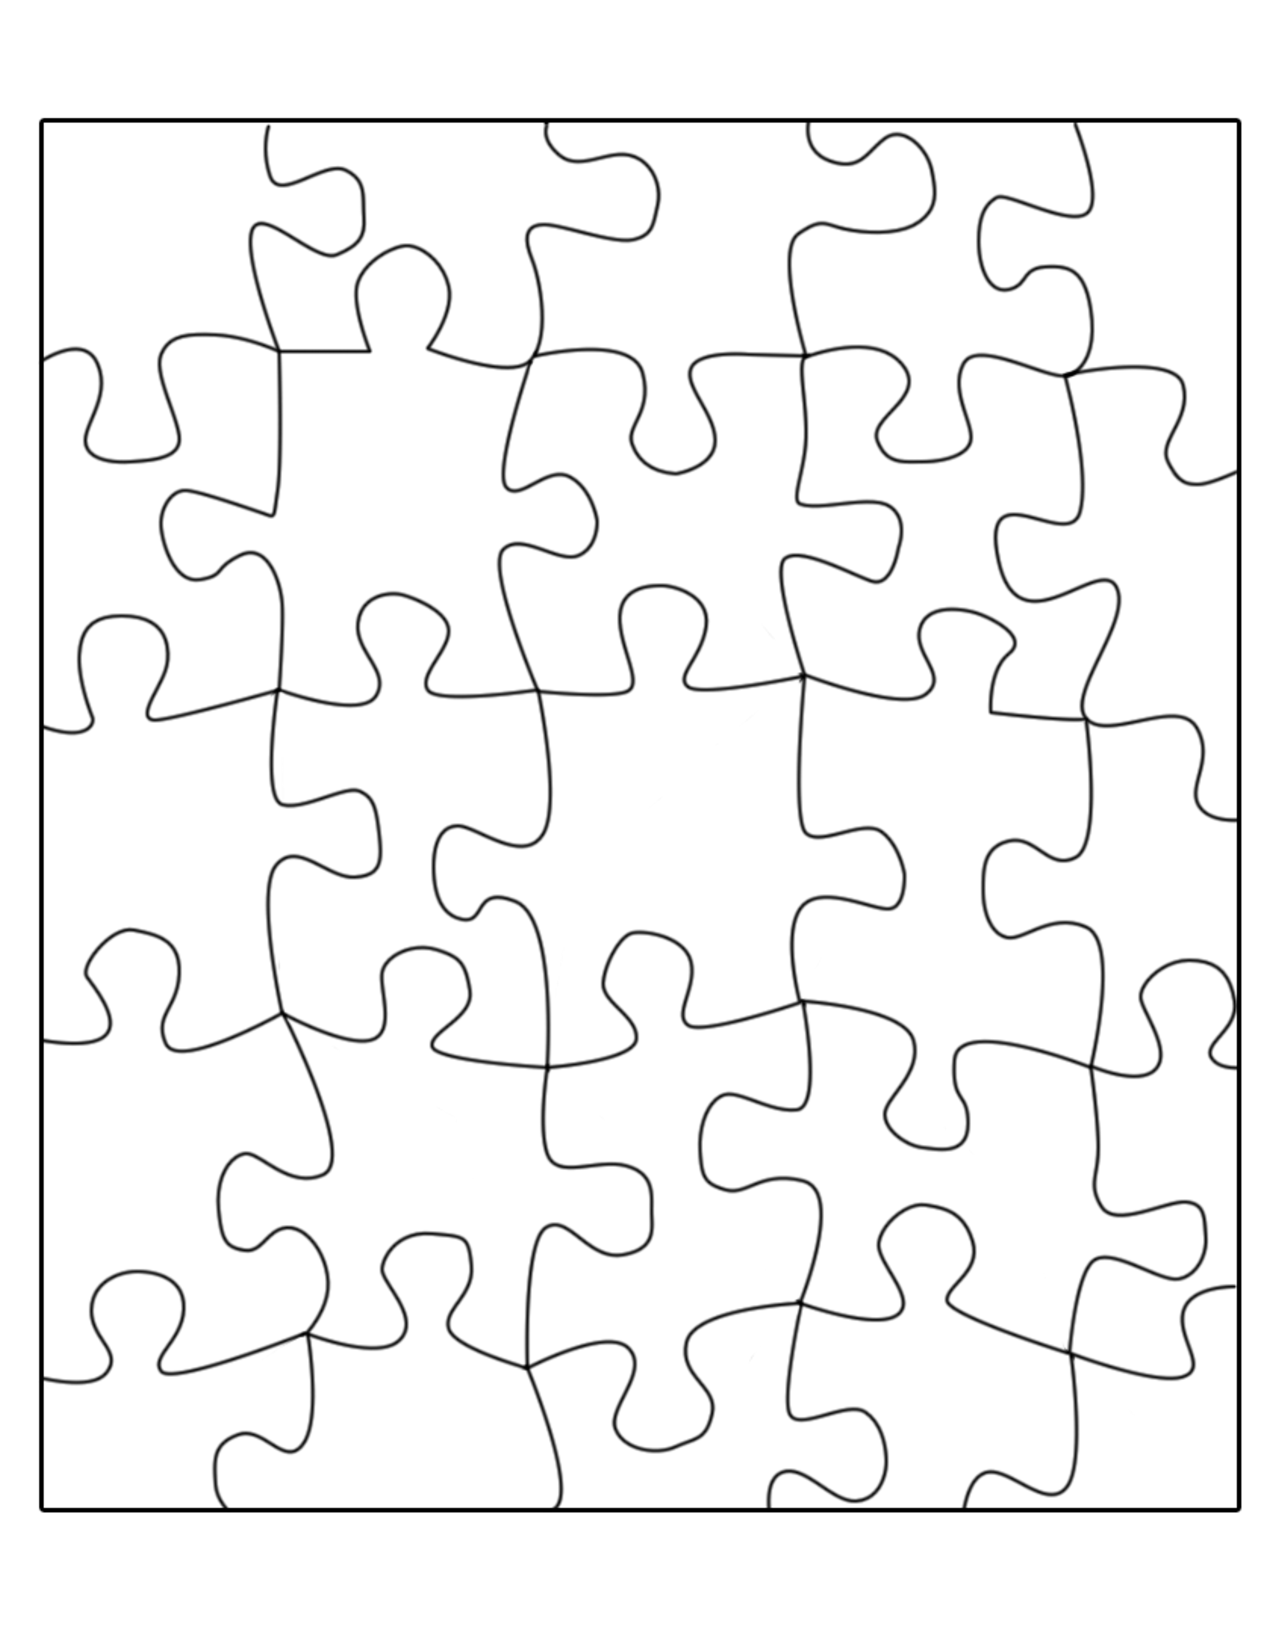 Free Puzzle Template Download Free Clip Art Free Clip Art On Clipart Library